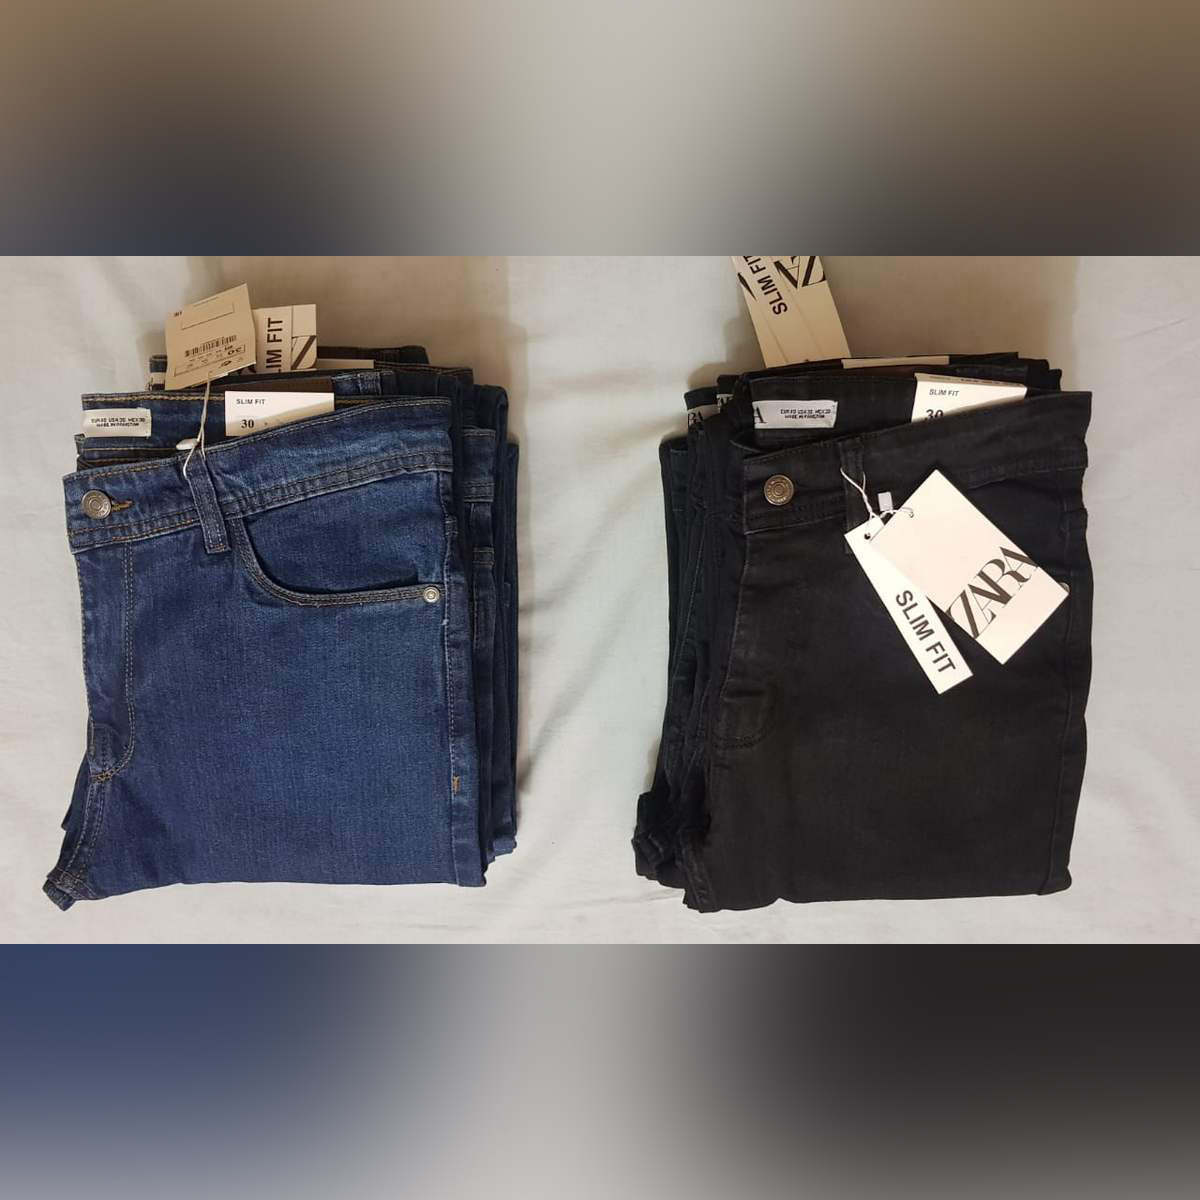 Pack of 2 denim jeans by AW